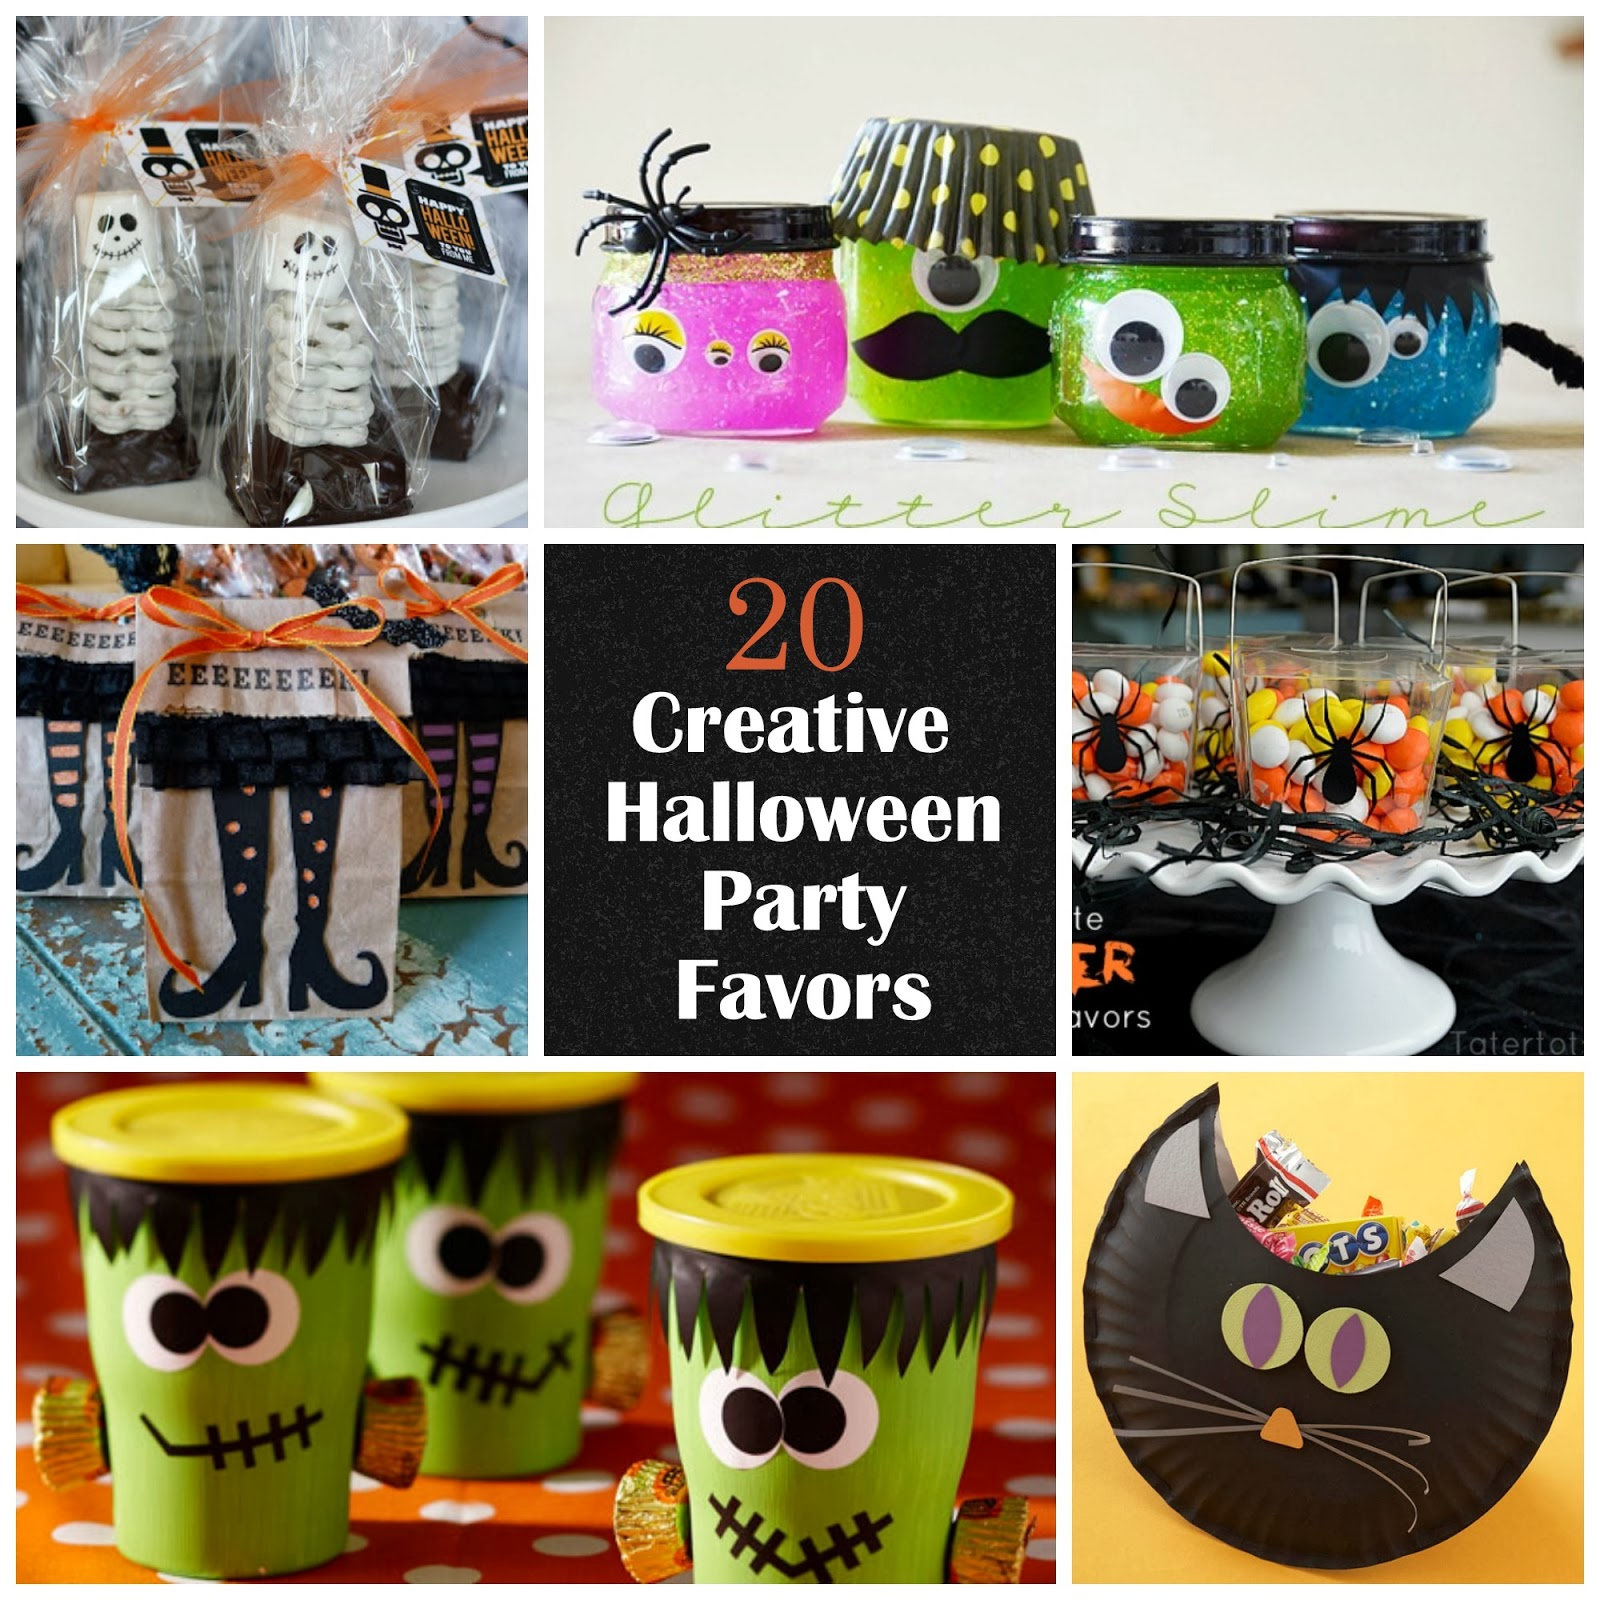 christian ideas for halloween 27 halloween decor craft recipe and party ideas on i dig